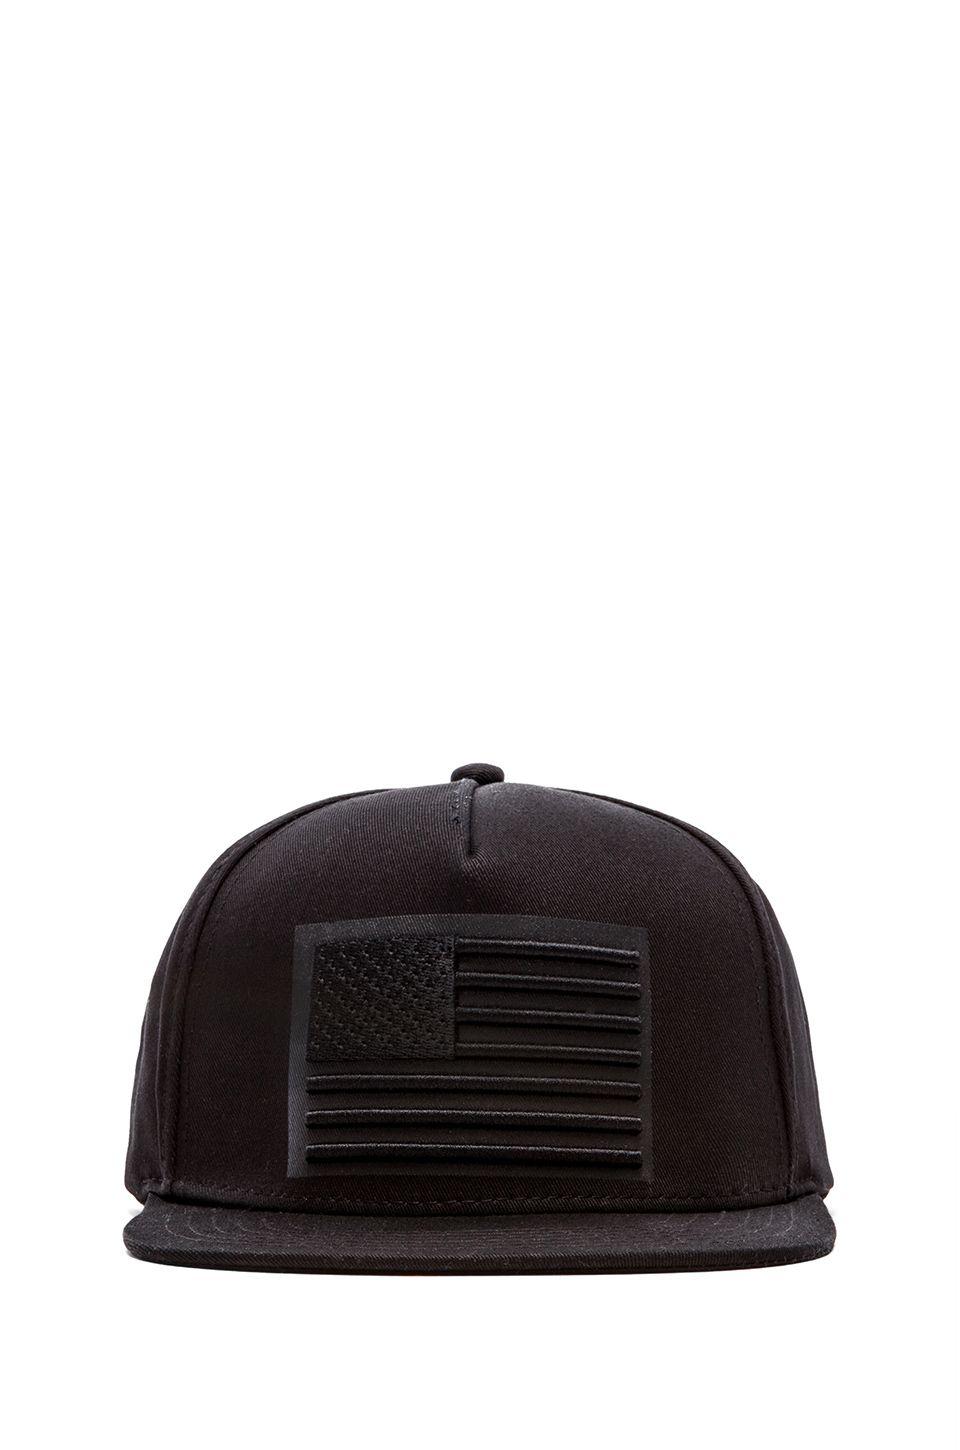 Stampd Black American Flag Hat for men